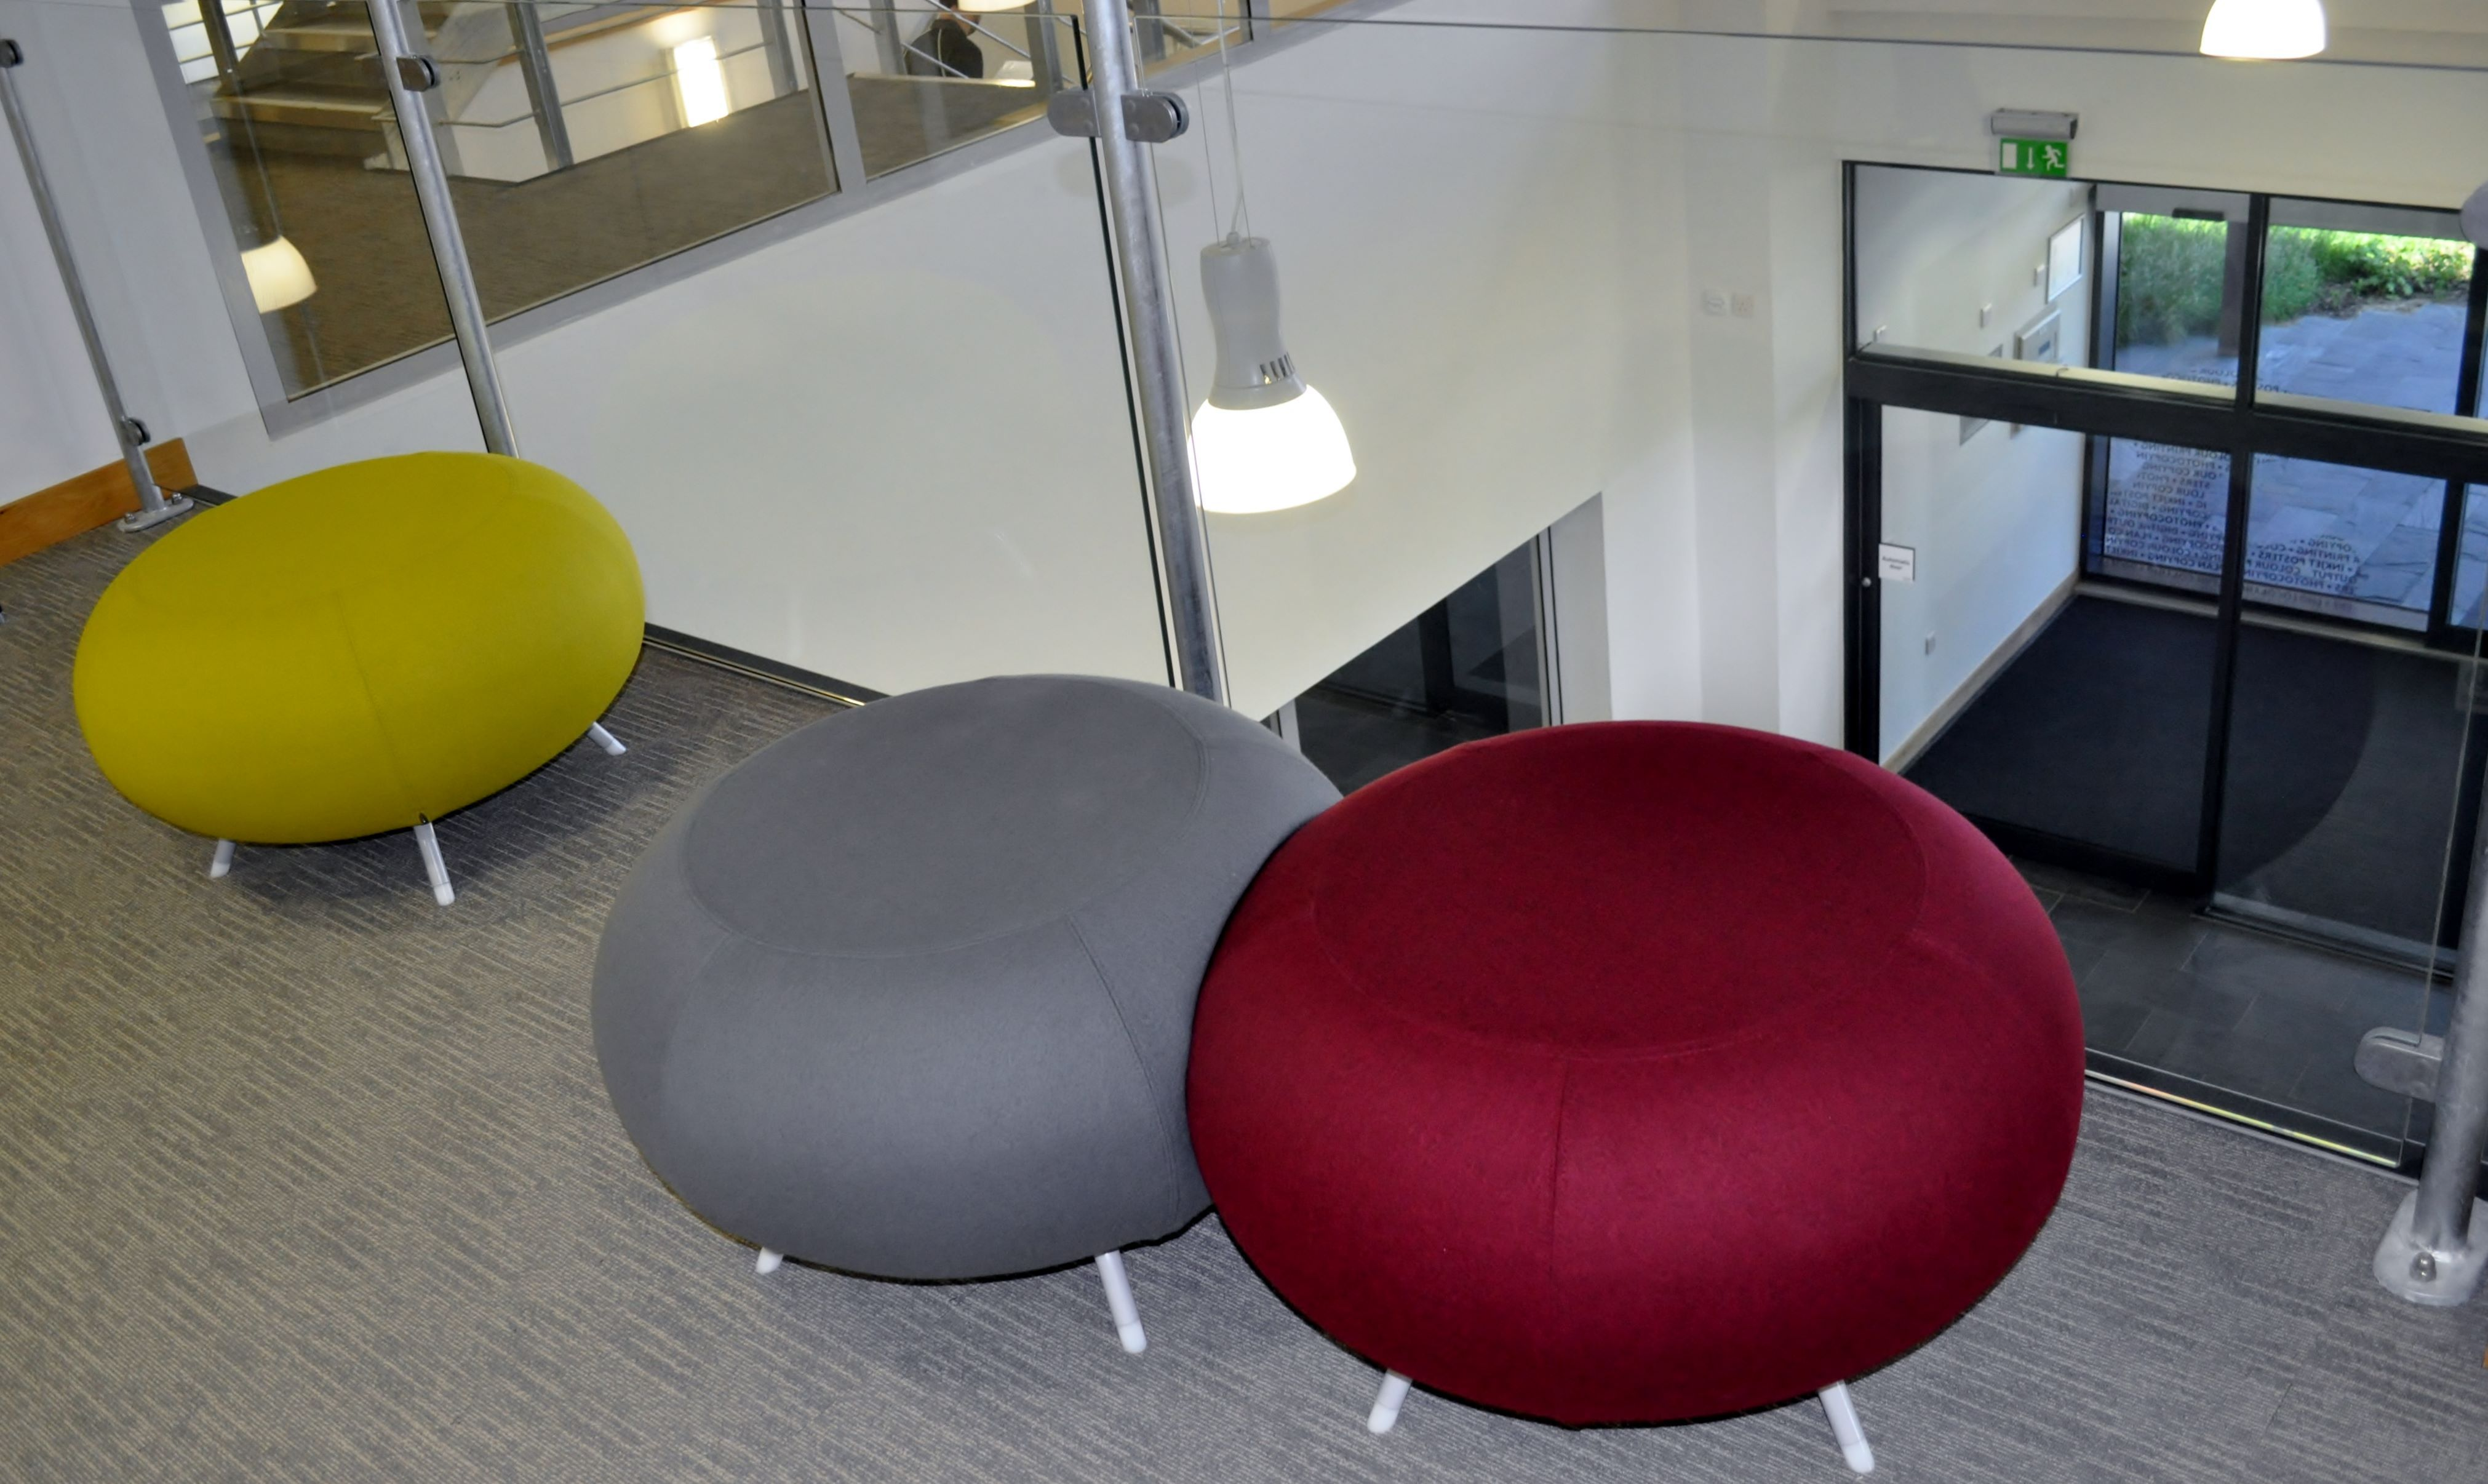 """""""Pebble"""" stools at the Mezzanine area above atrium of the St Austell Print Company's Head Office at the £6.2 million eco-business park in St Austell. Interior scheme by Spinriver Design ltd, Newquay."""